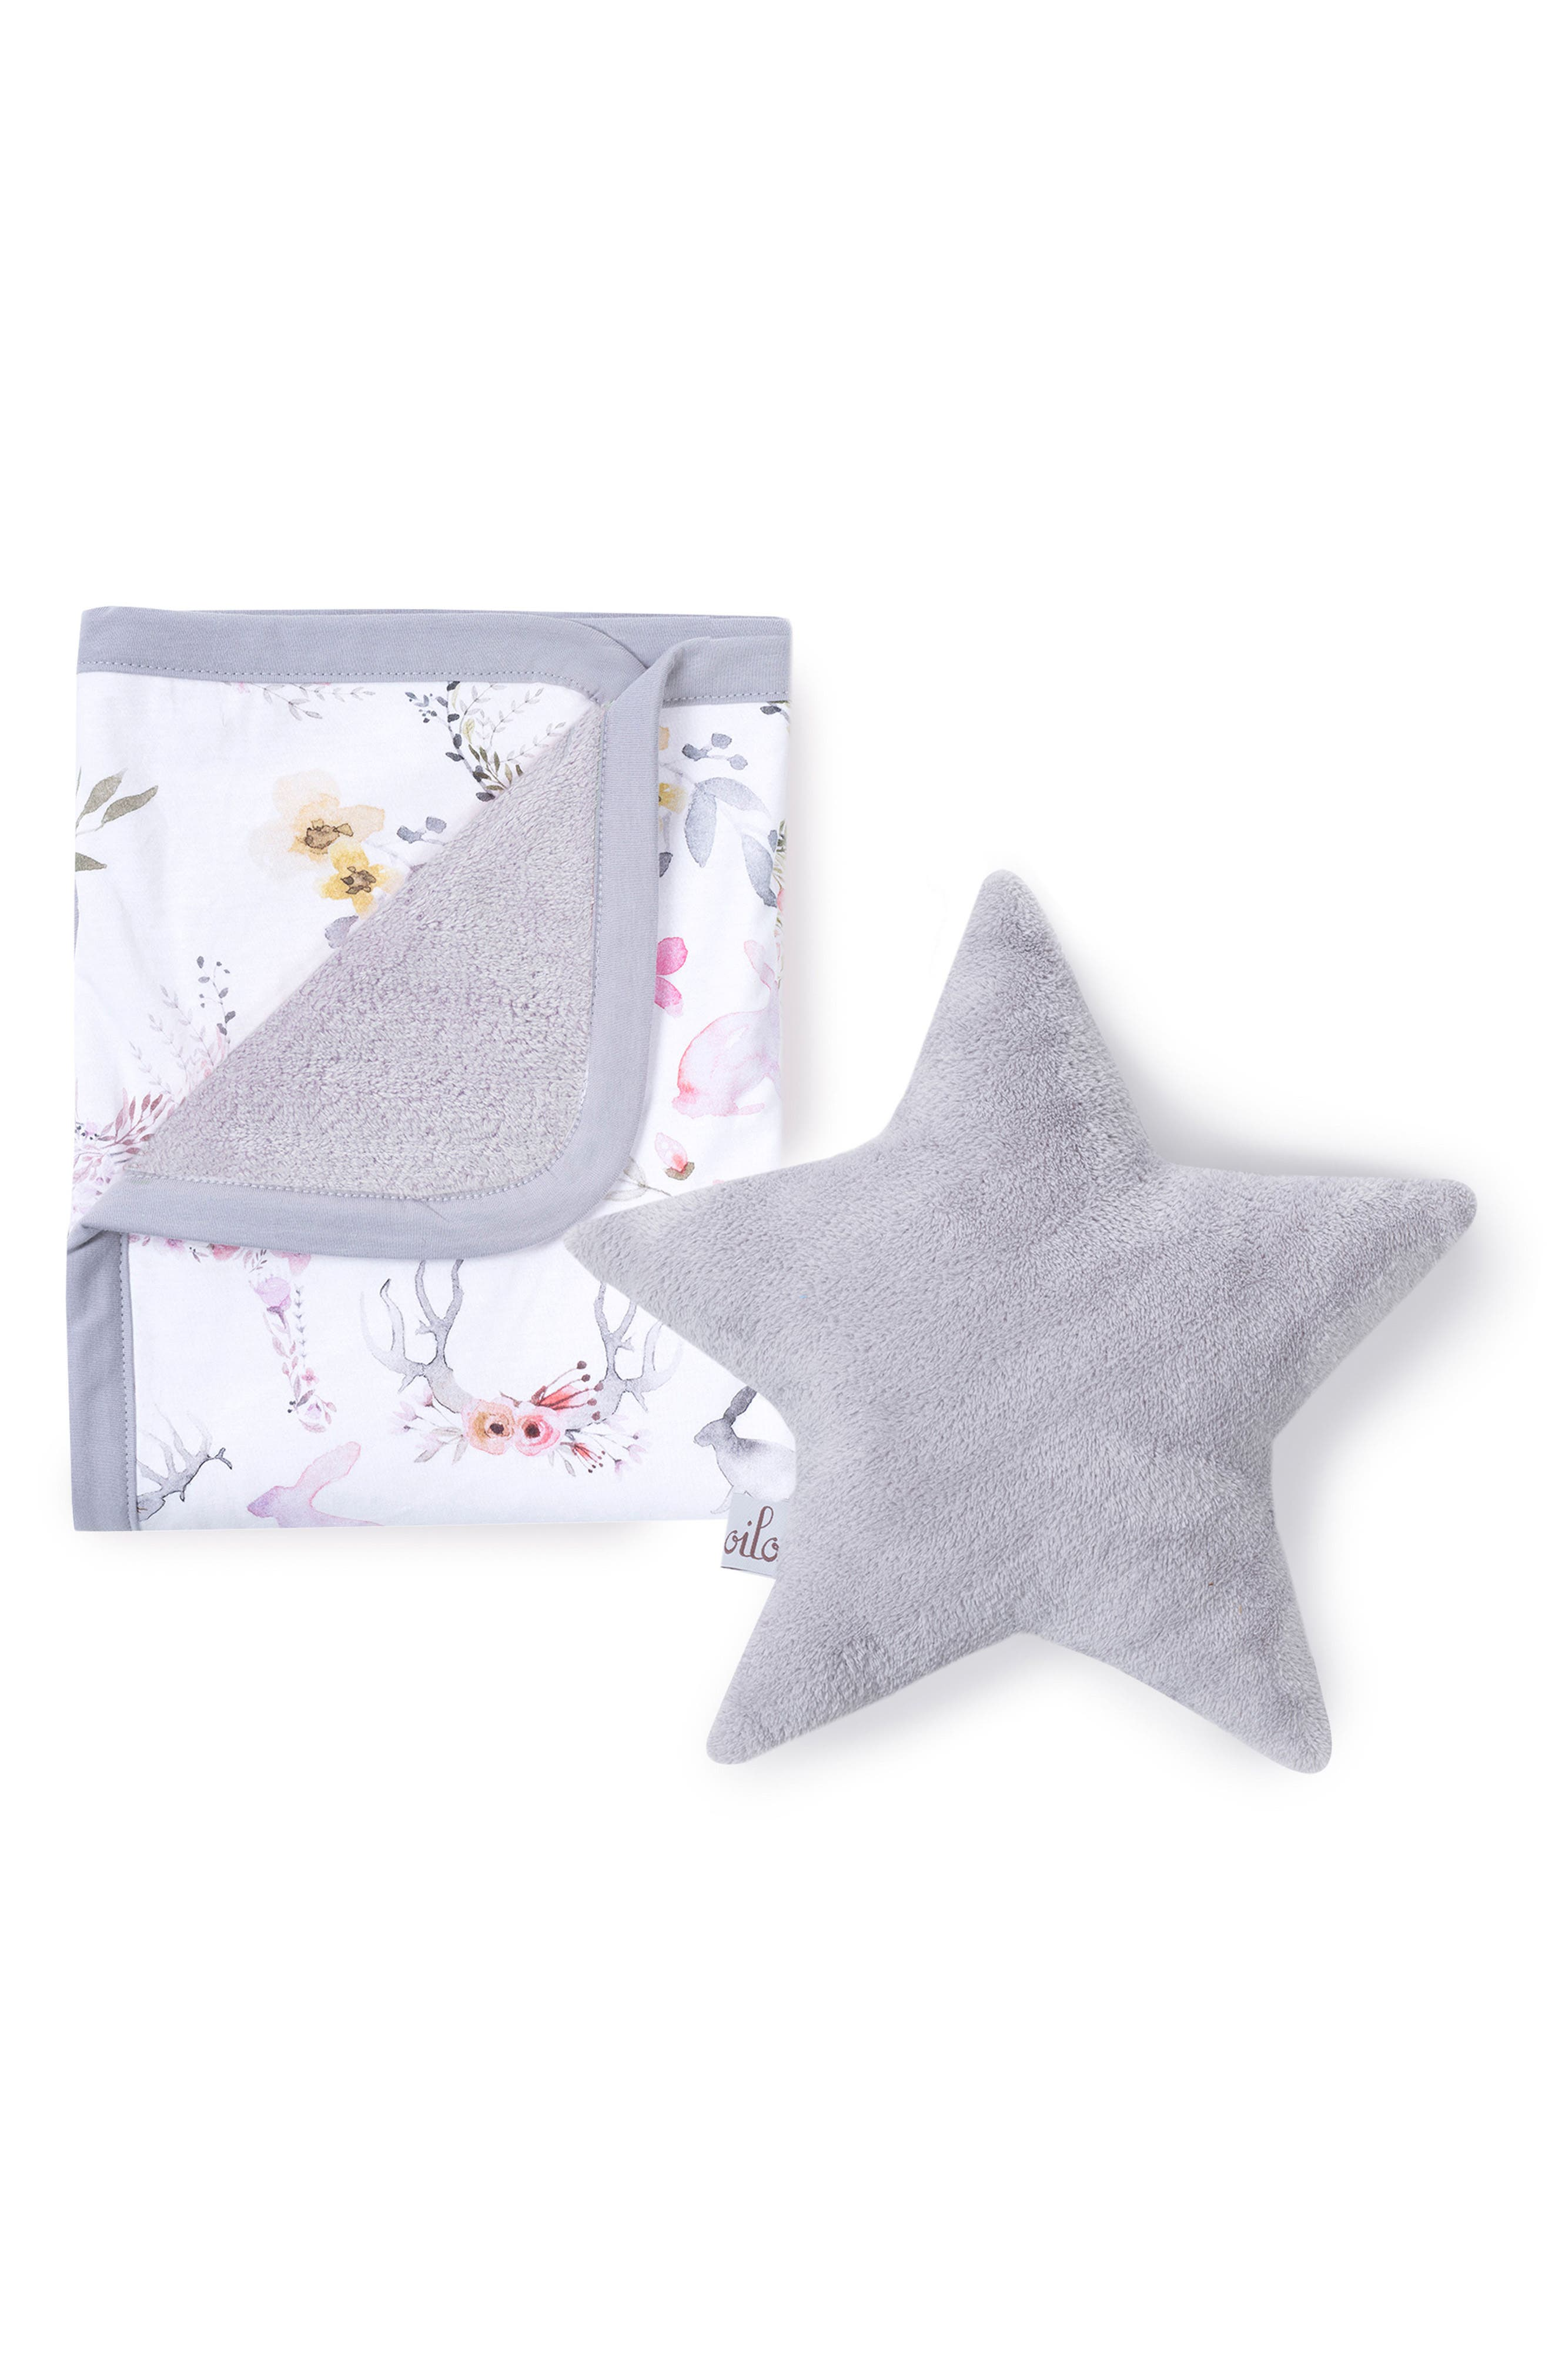 Oilo Fawn Cuddle Blanket & Star Pillow Set